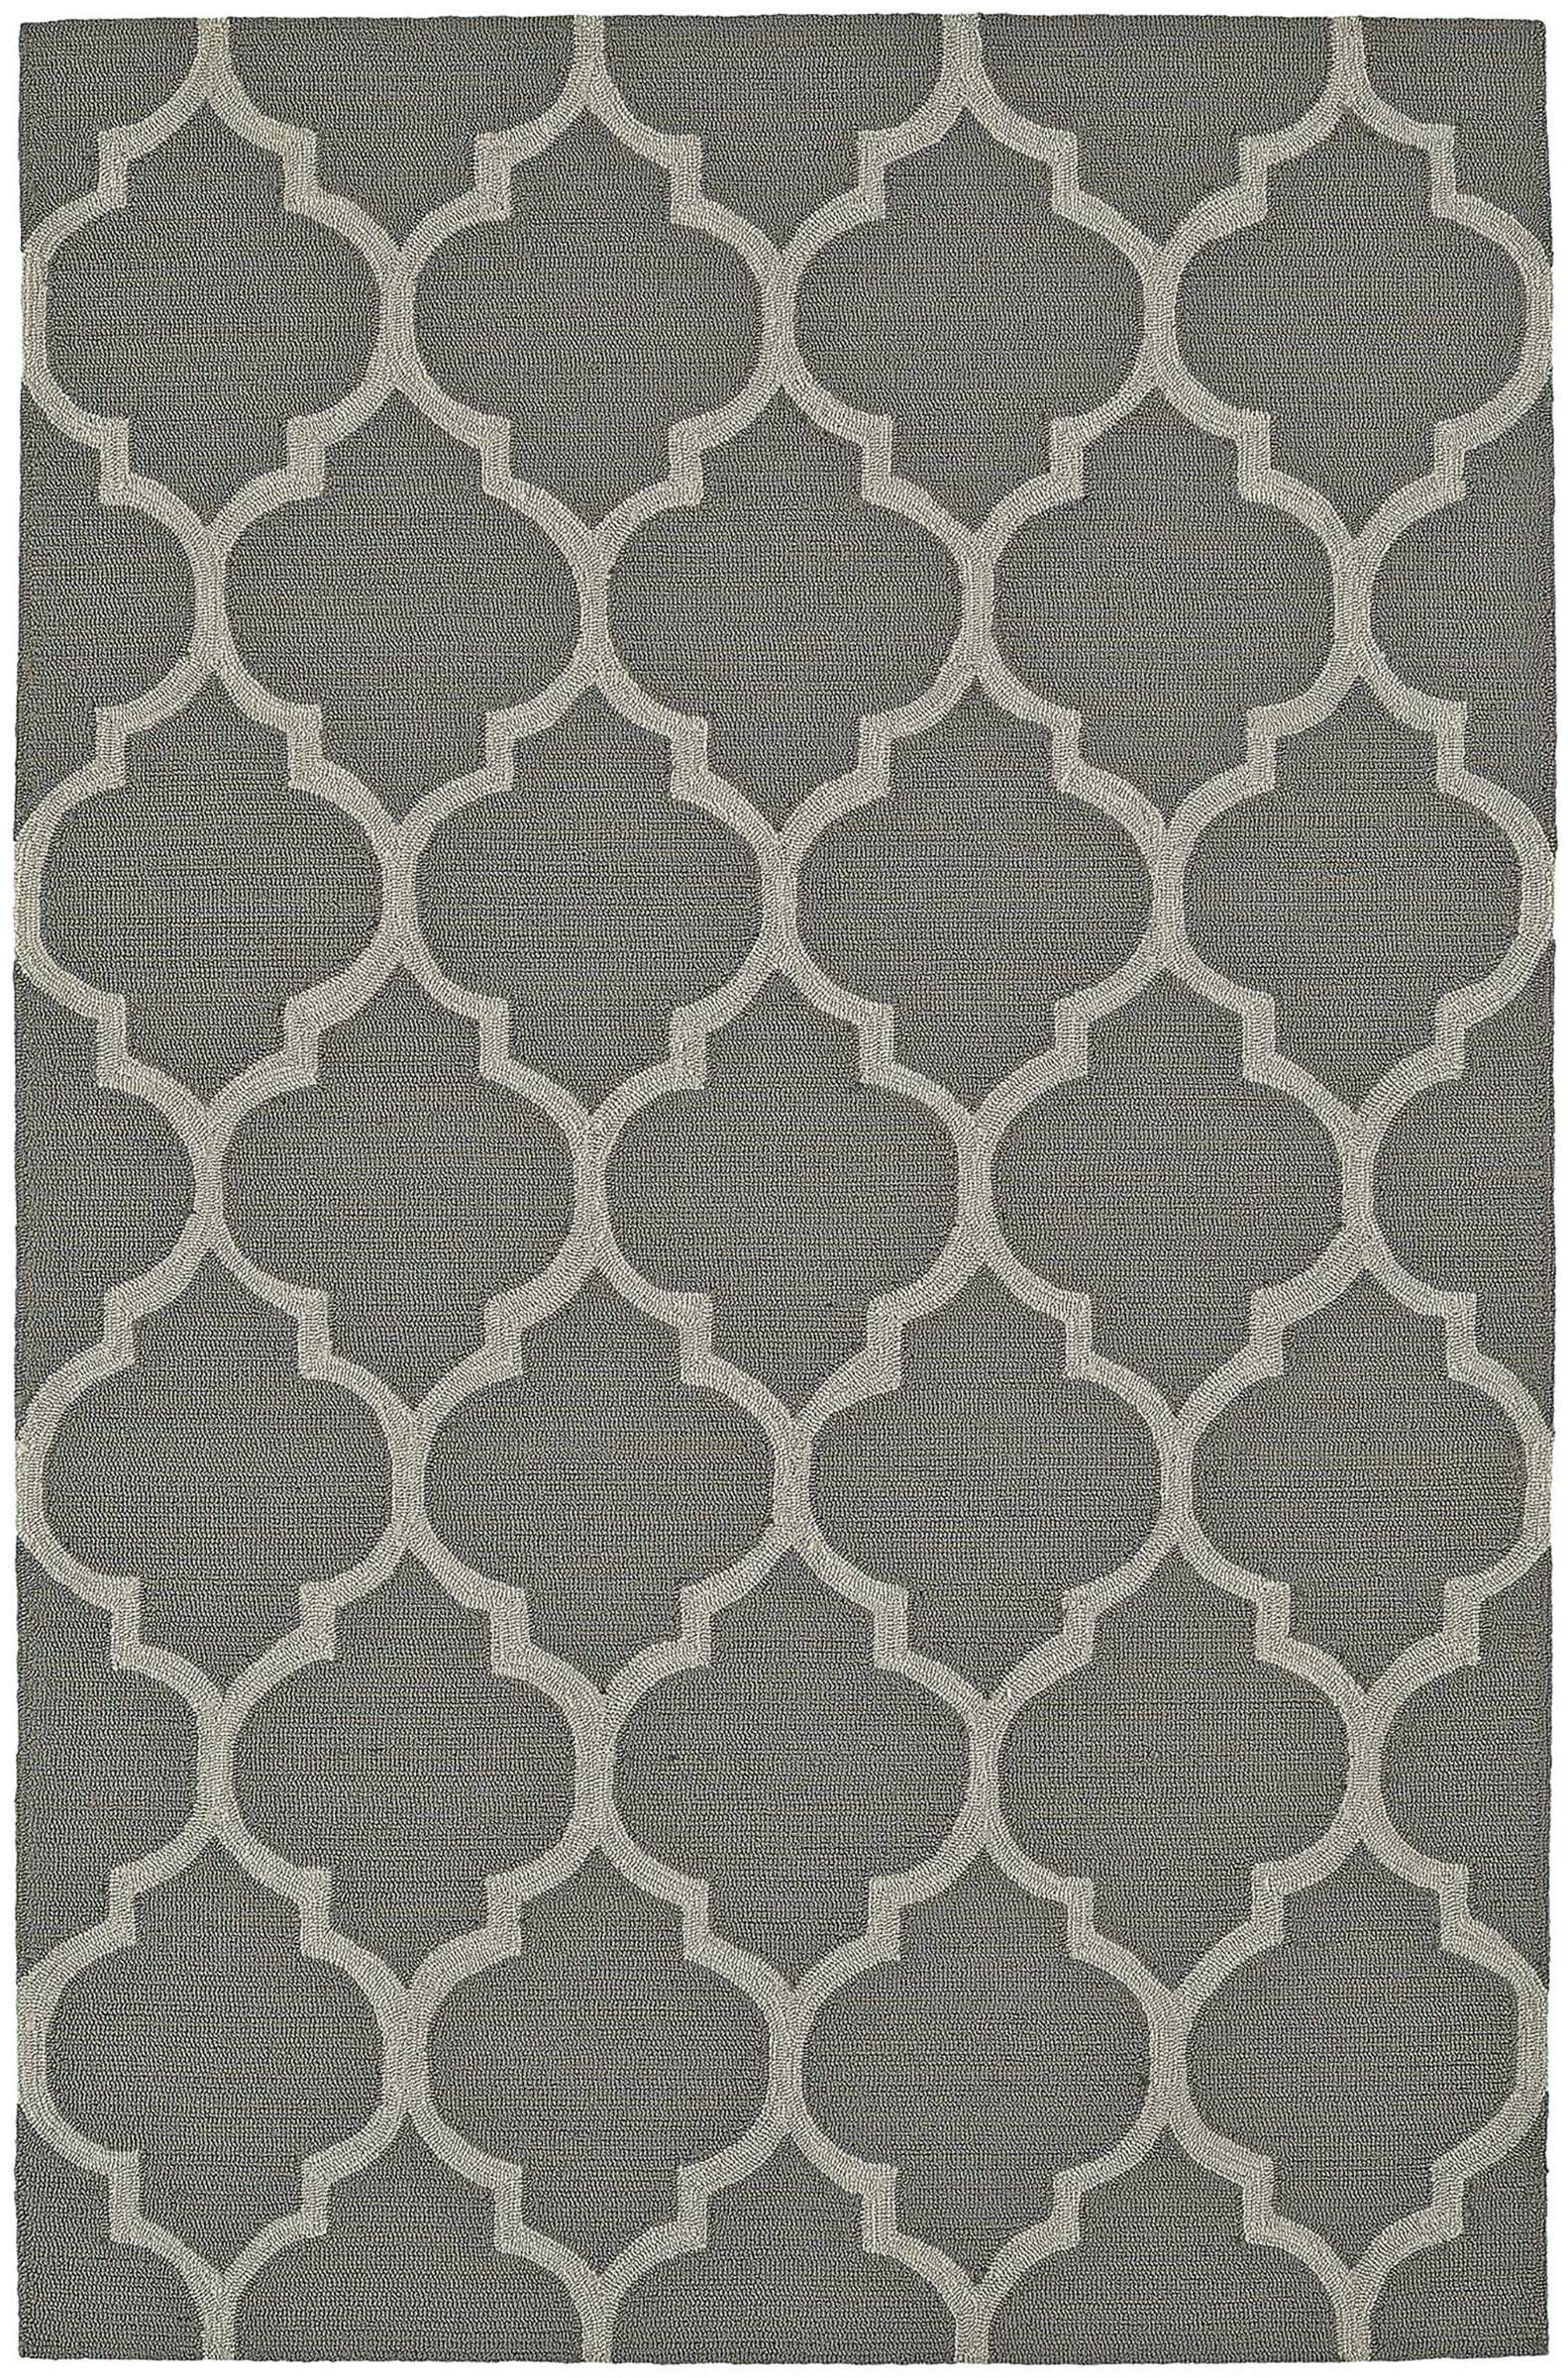 Cabana Hand-Tufted Pewter Indoor/Outdoor Area Rug Rug Size: Rectangle 5' x 7'6